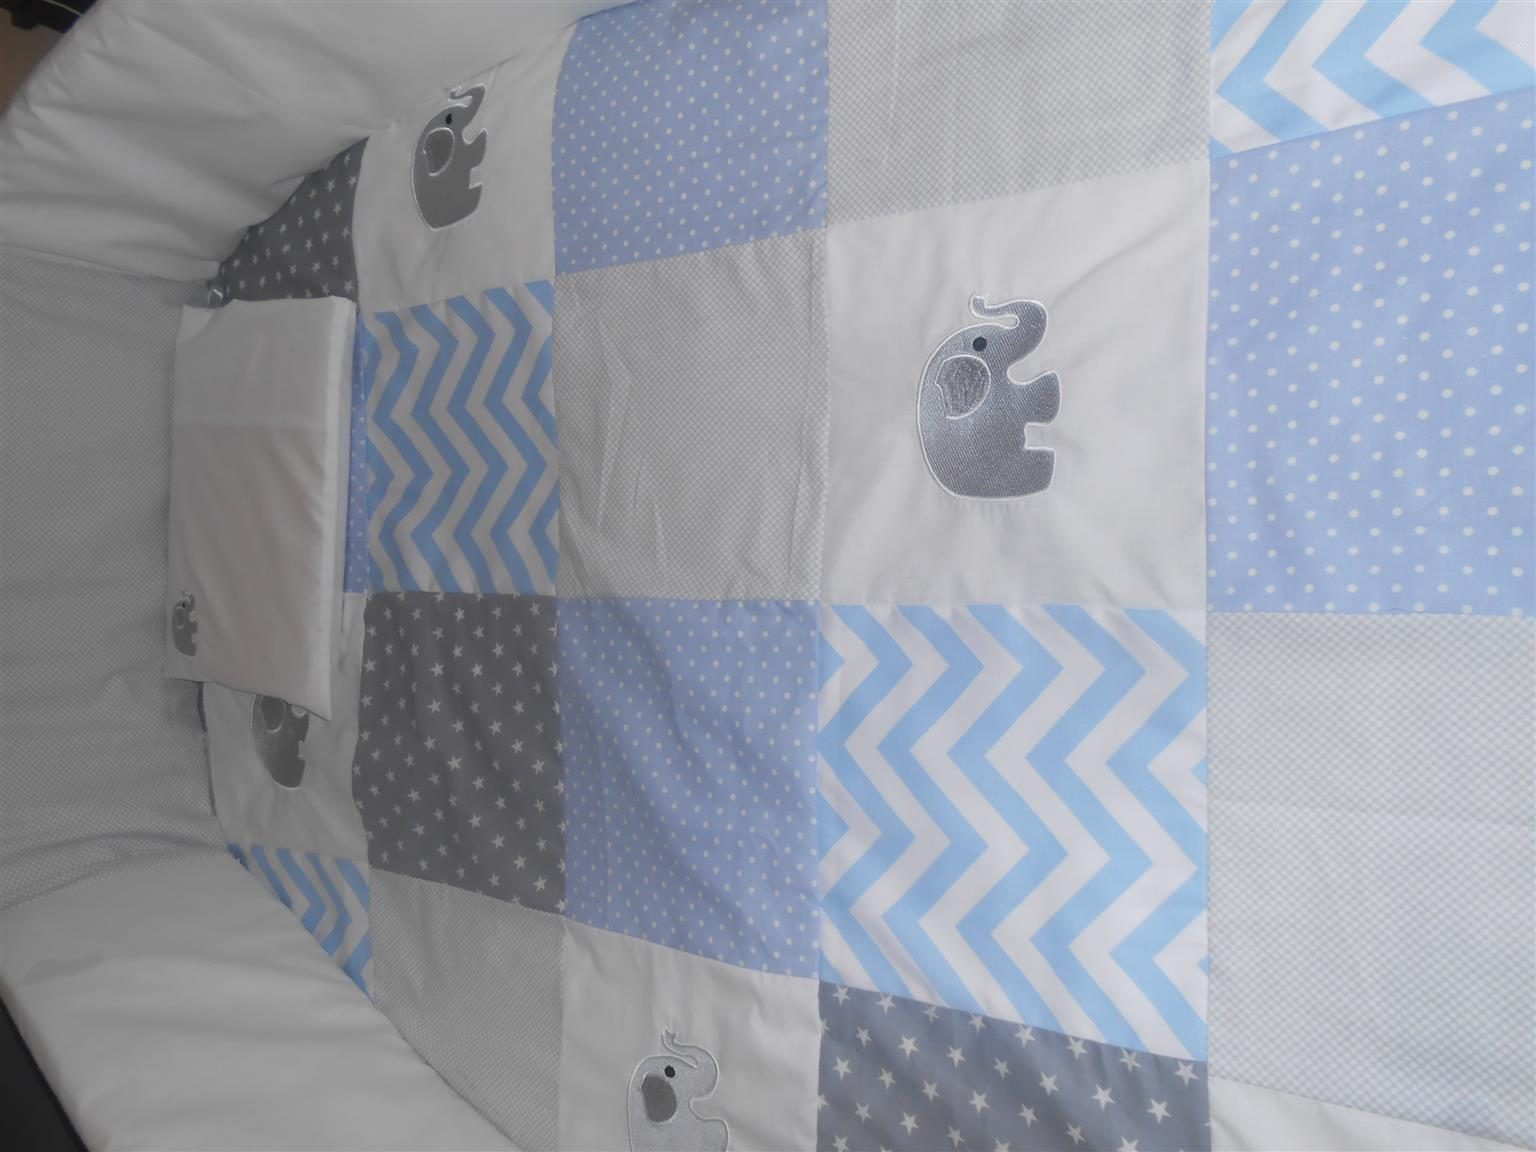 exclusive custom made linen and accessories for babies and toddlers